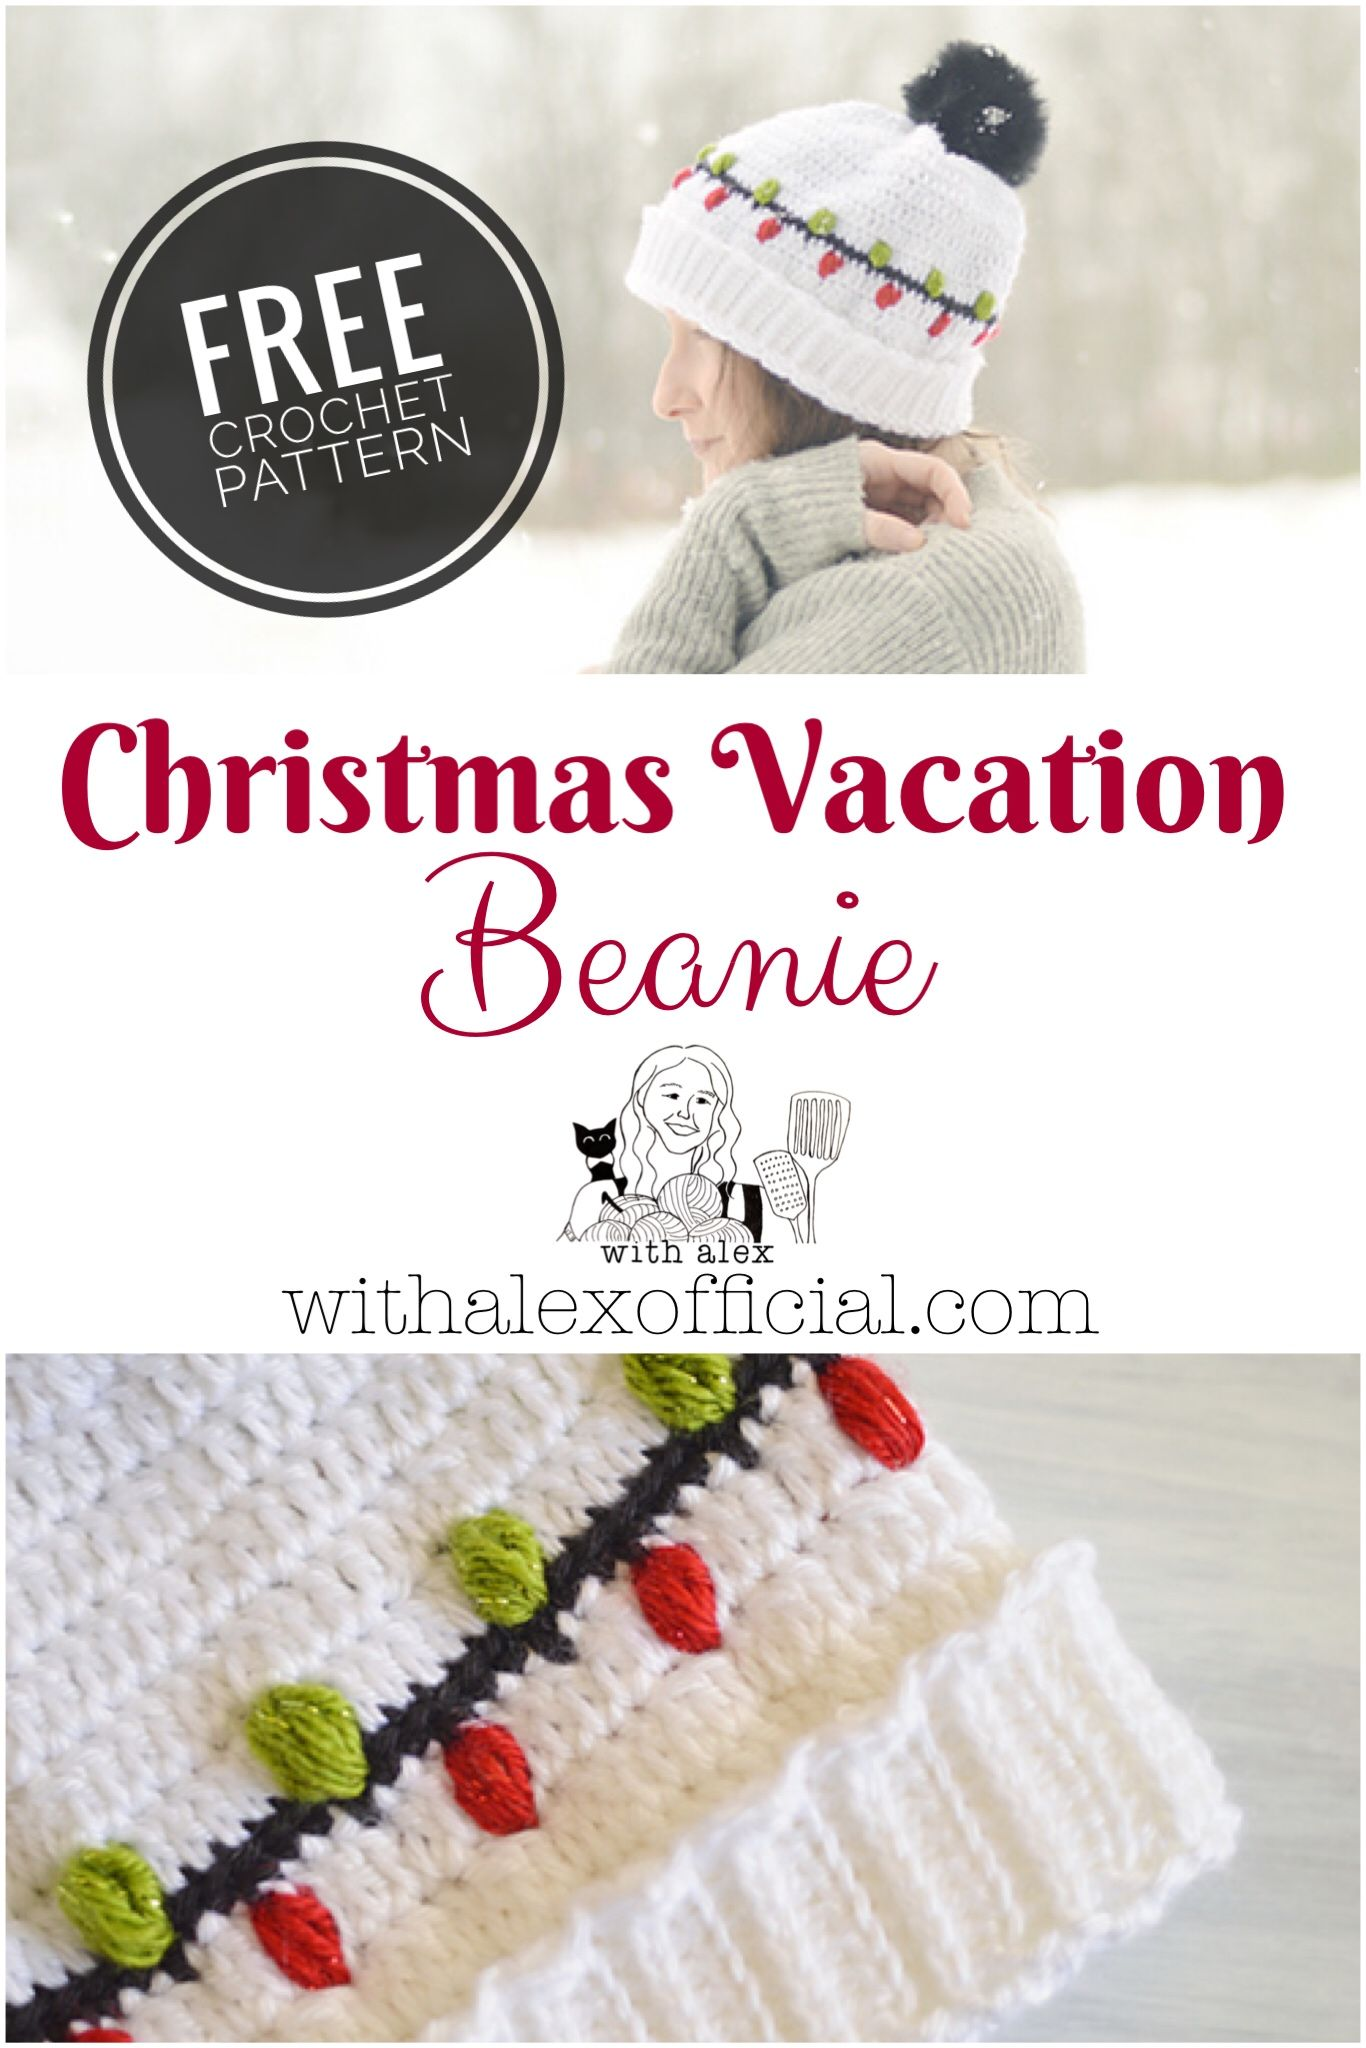 The Christmas Vacation Beanie is the perfect hat for the holiday/Christmas Season! The crochet Christmas light stitch adds a fun and whimsical element without going overboard. This free crochet pattern also has a flip up brim which makes it very warm and cozy. #christmashat #crochetchristmas #freecrochetpattern